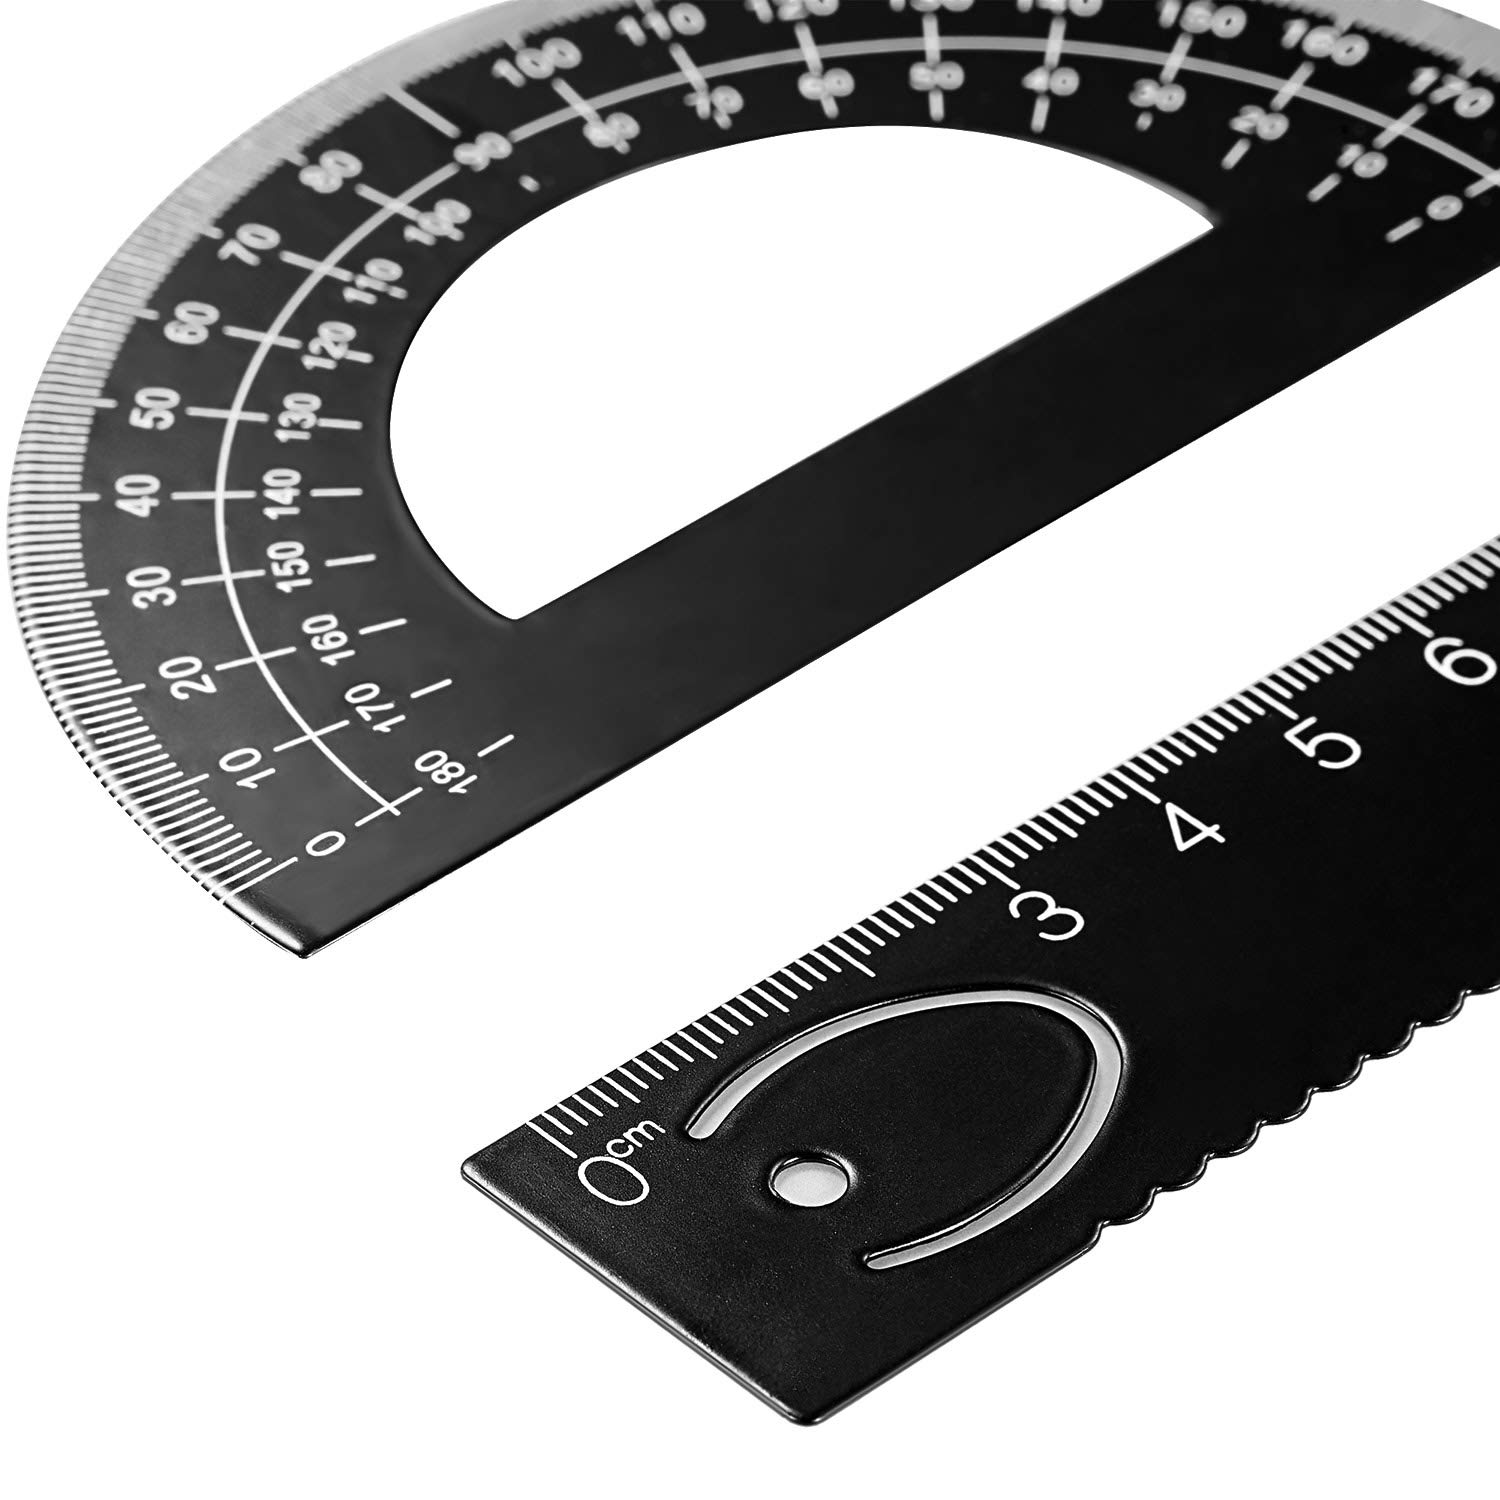 Leinuosen 6 Pieces Aluminum Triangular Architect Scale Ruler Set, 2 Pack 12 Inch Aluminum Scale Ruler with 4 Pieces Aluminum Triangle Ruler Square Set for Architects, Students, Draftsman and Engineers by Leinuosen (Image #3)